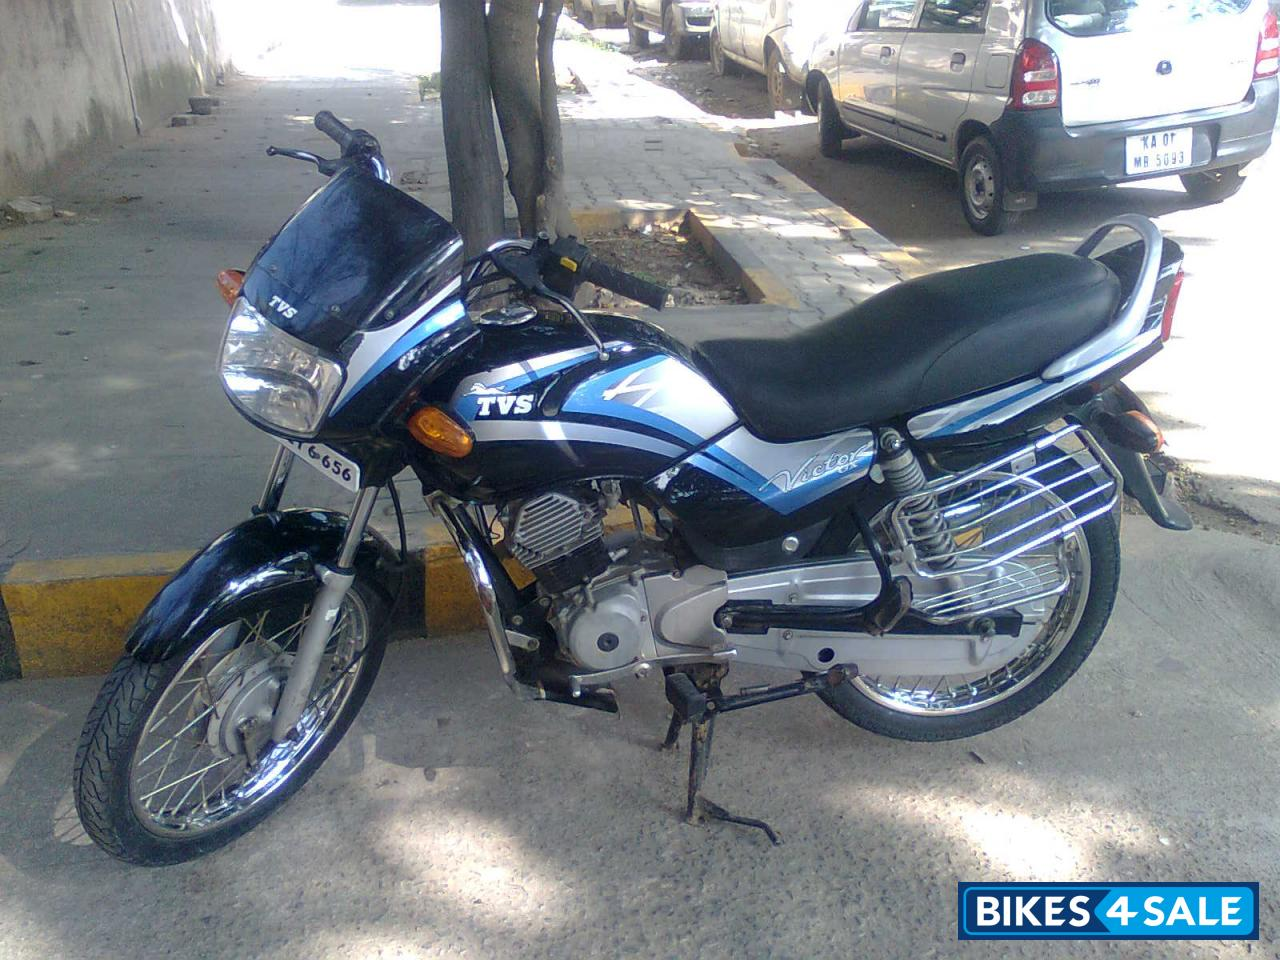 Tvs Victor Gx Picture 1 Album Id Is 67426 Bike Located